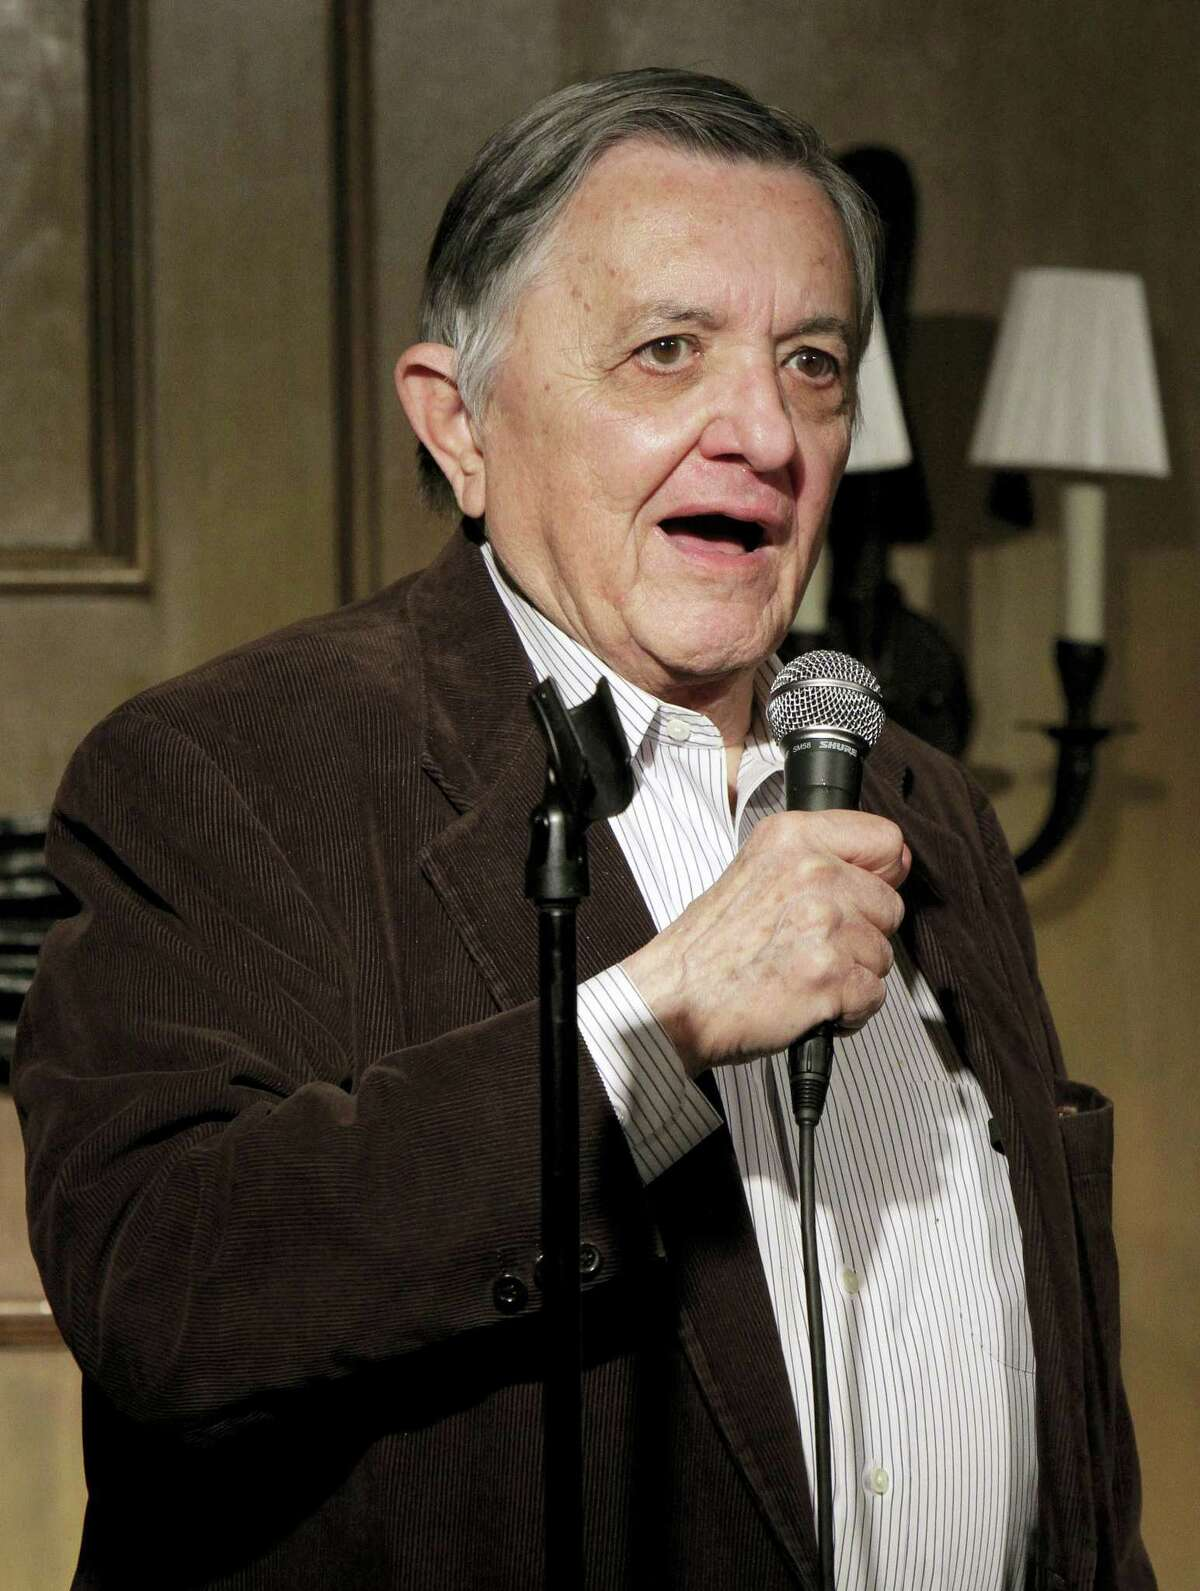 This photo from Monday, March 28, 2011, shows broadcast reporter Gabe Pressman as he appears at the Friar's Club, in New York. Pressman, an intrepid, Emmy-winning journalist who still relished going to work at the age of 93, died early Friday, June 23, 2017 at a Manhattan hospital.